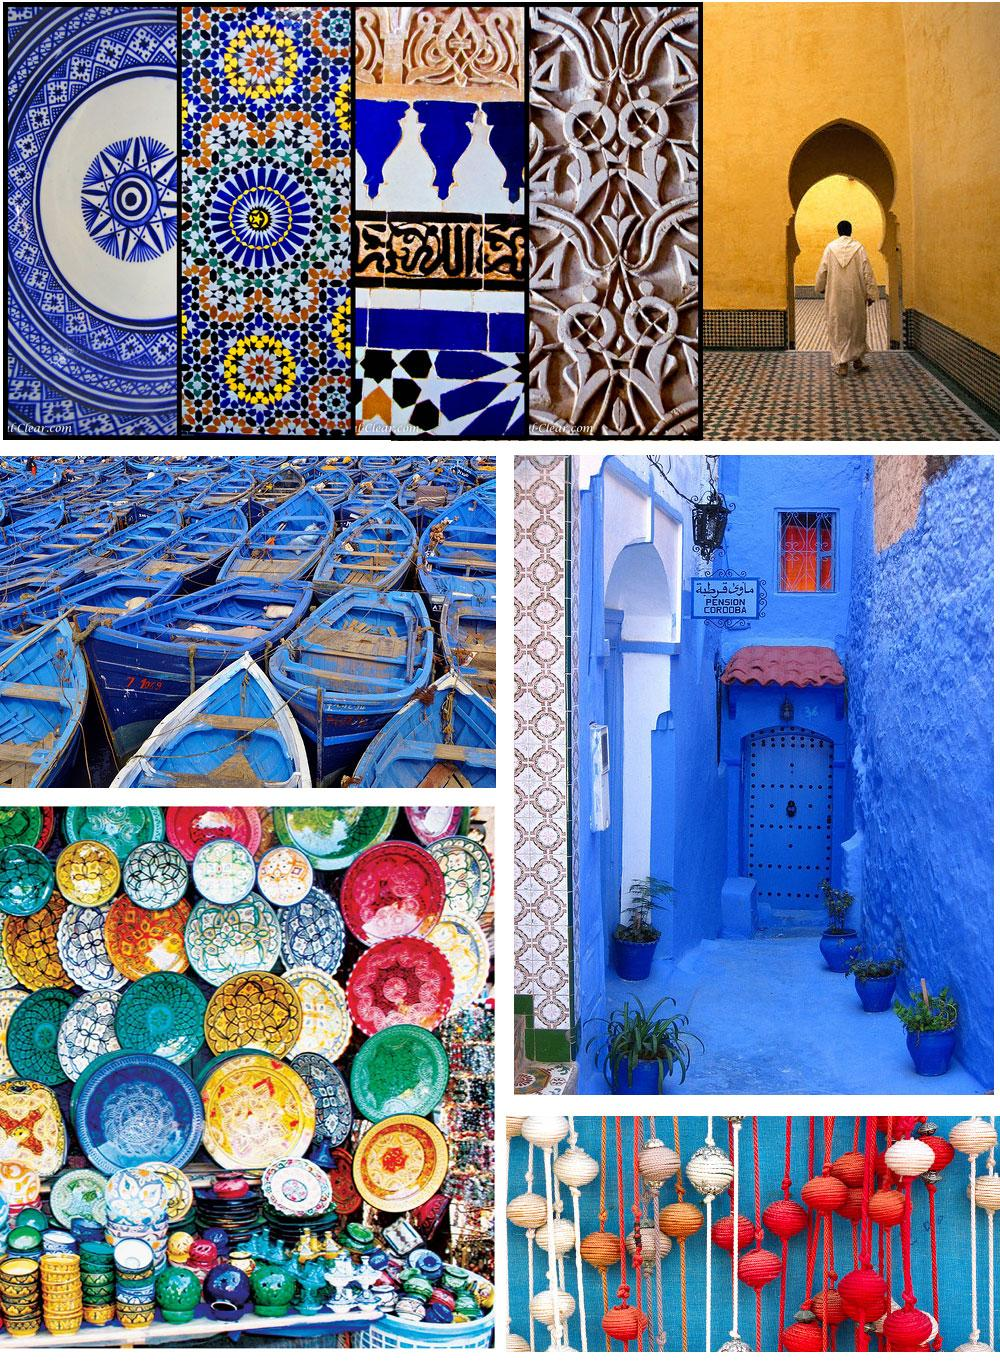 Berber Whiskey Travels: Morocco through patterns - image 1 - student project